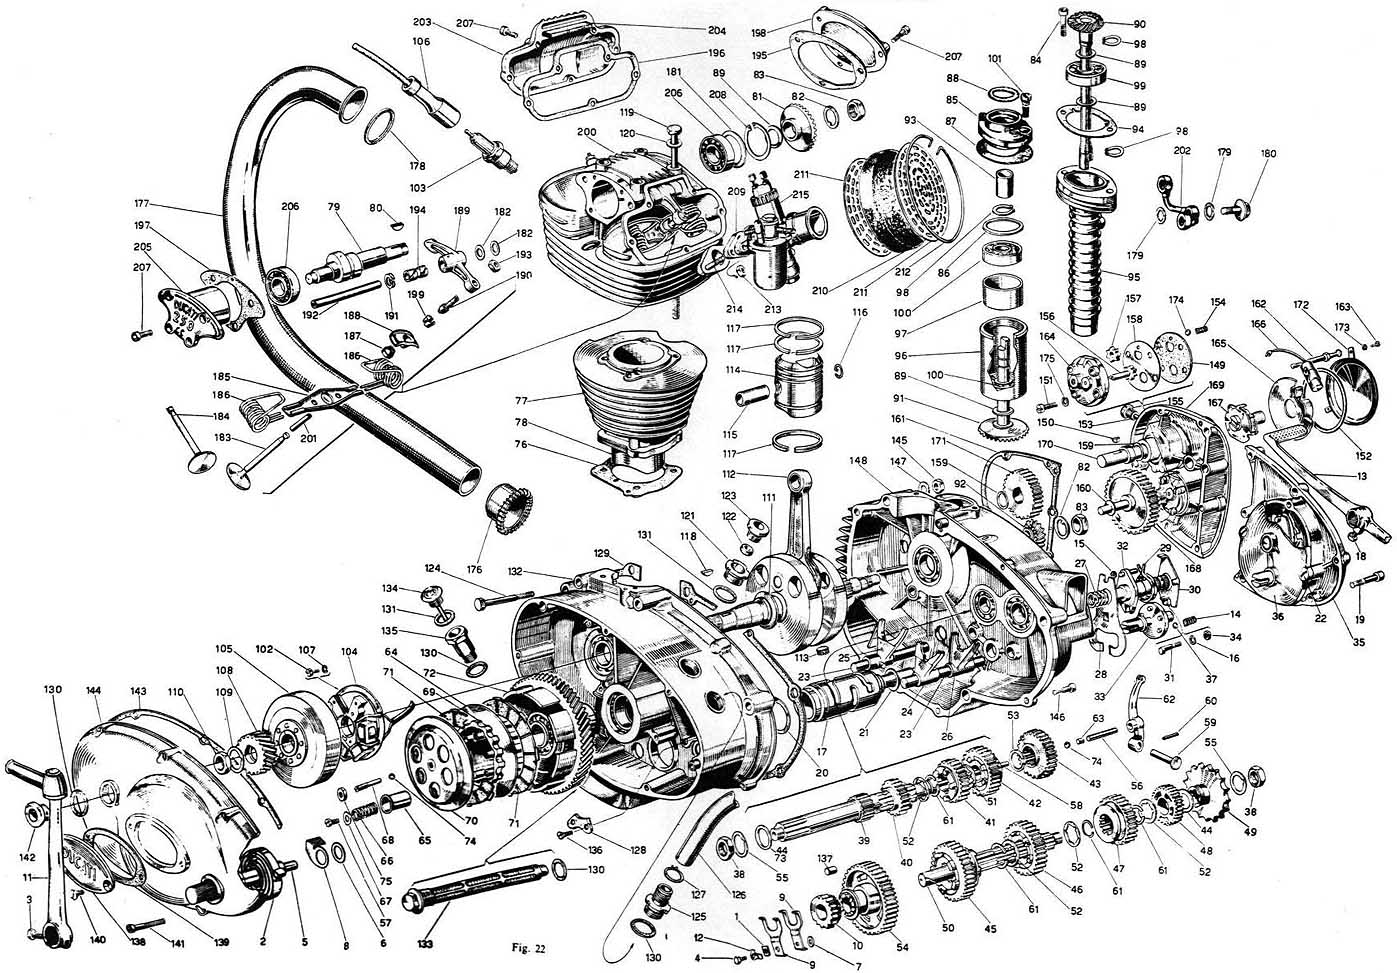 Kawasaki Dirt Bike Engine Diagram on triumph 600 wiring diagram